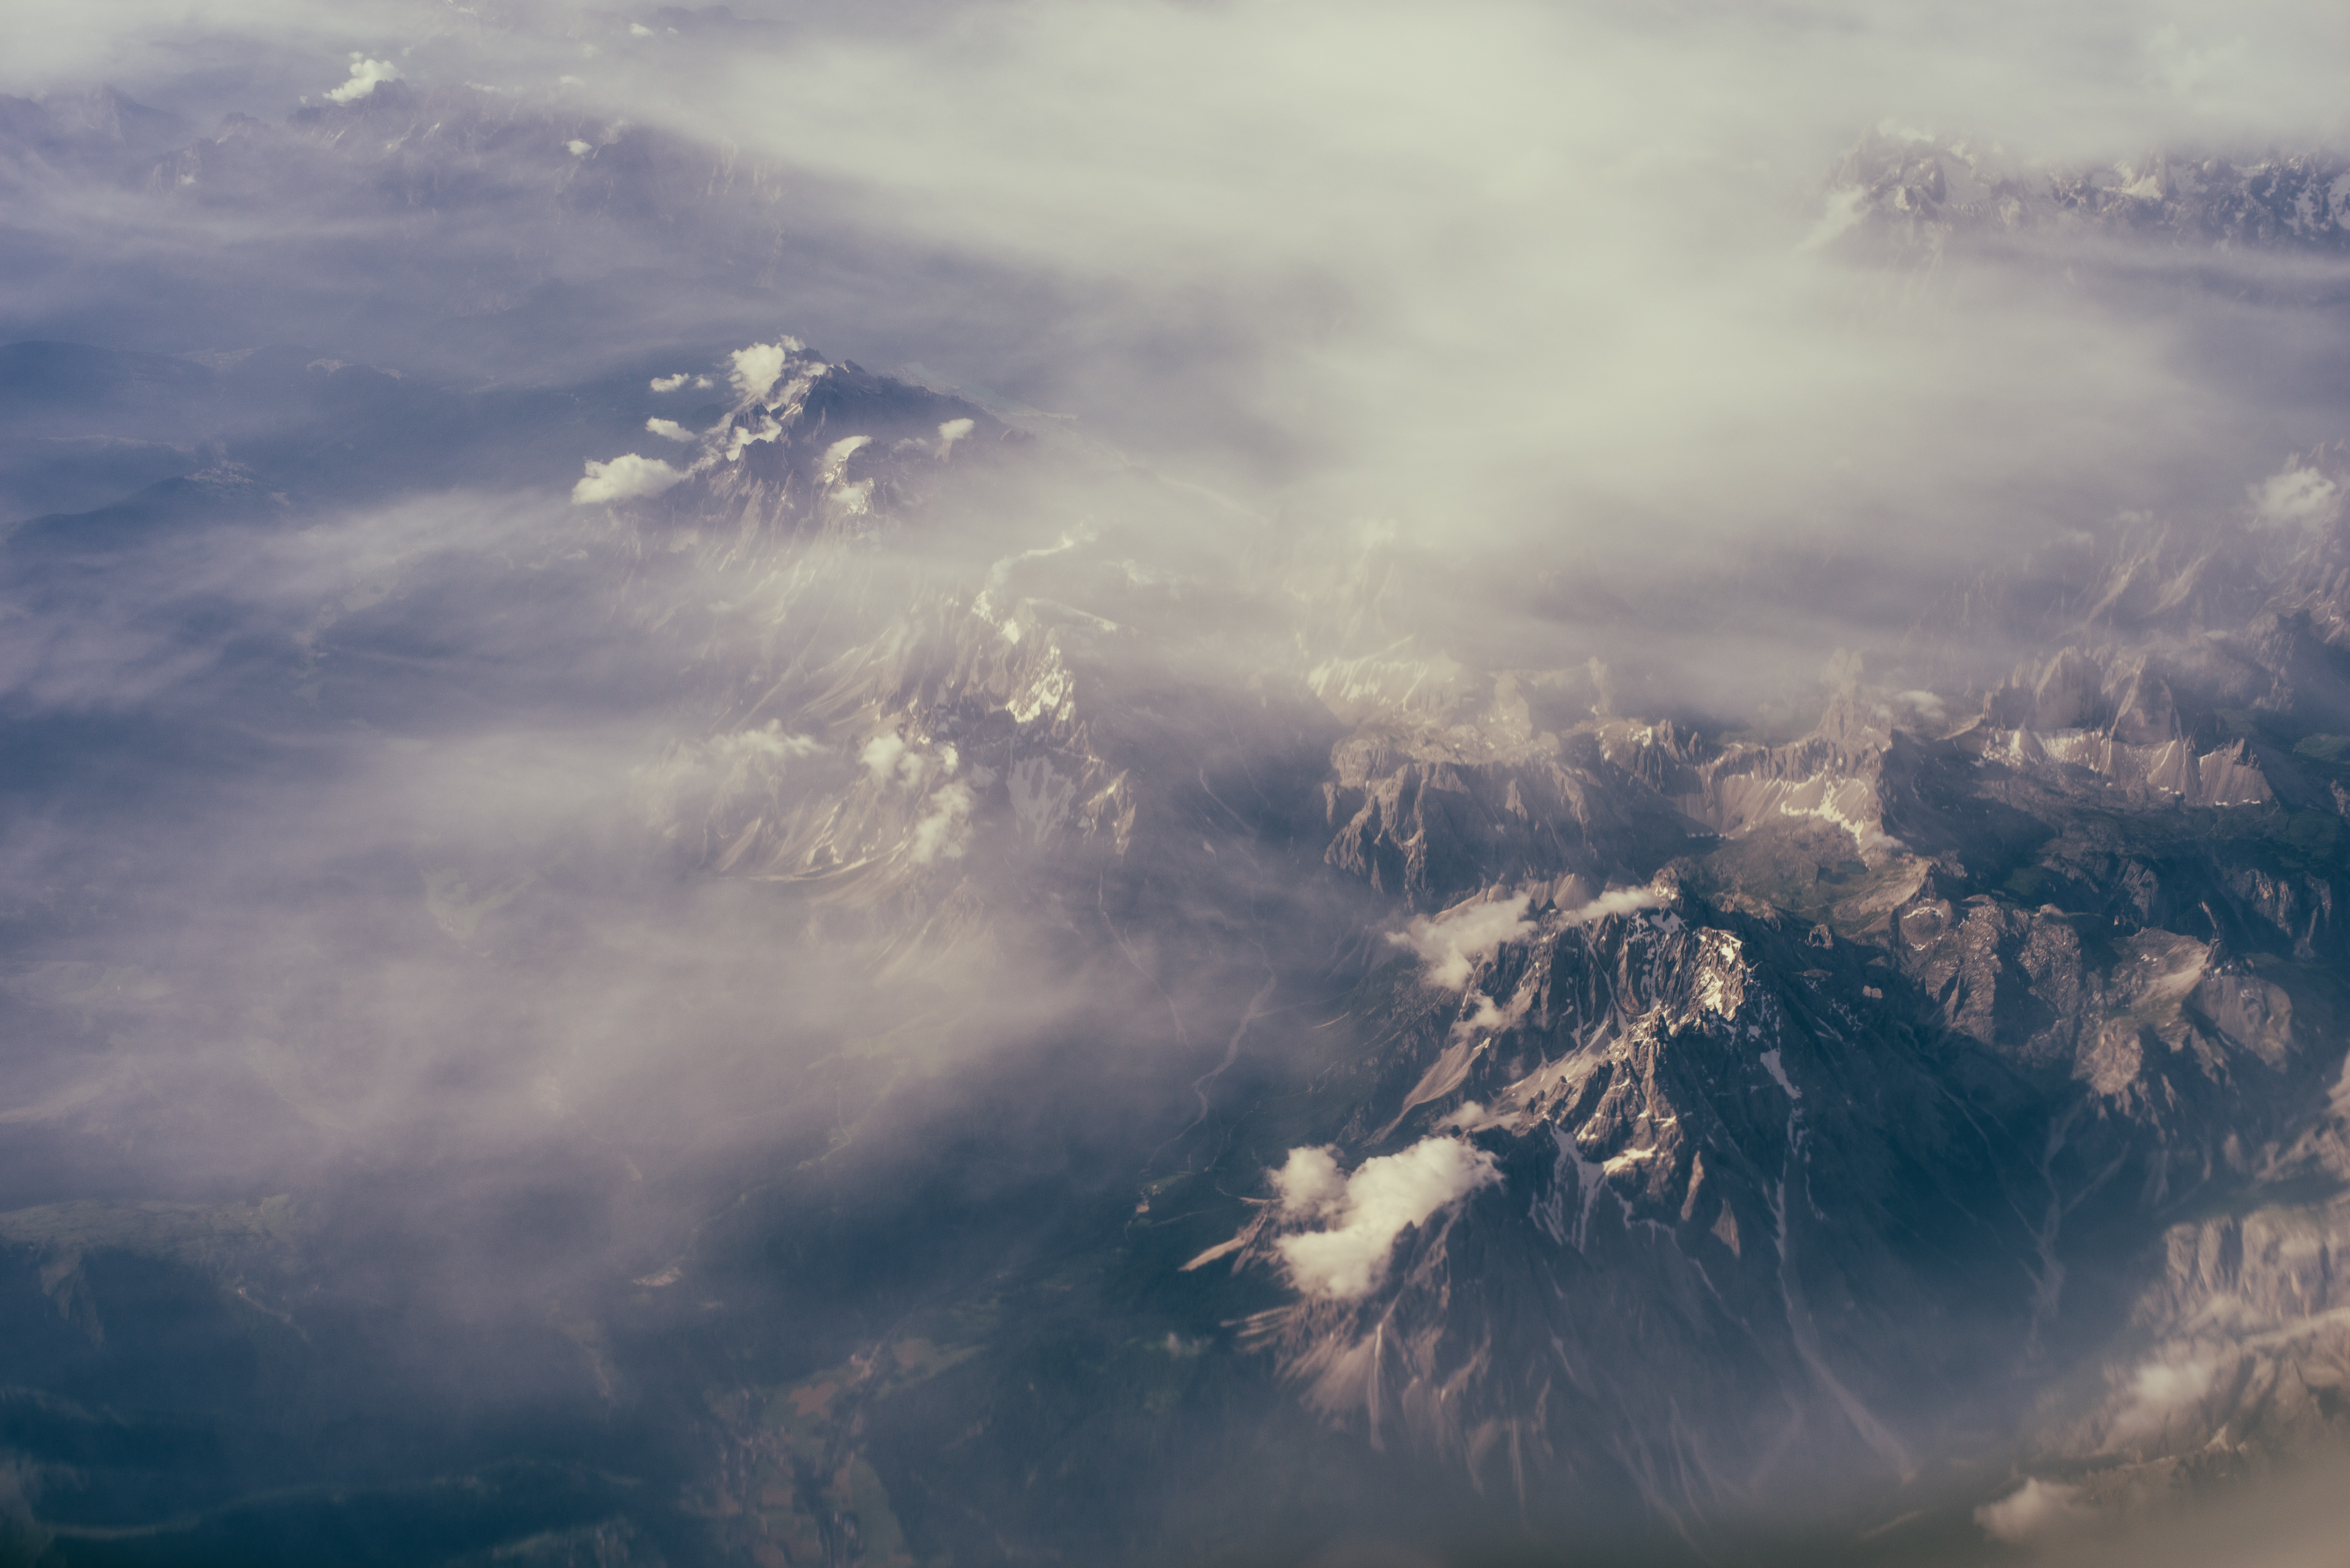 Fog covers rocky peaks and valleys of a rocky mountainscape